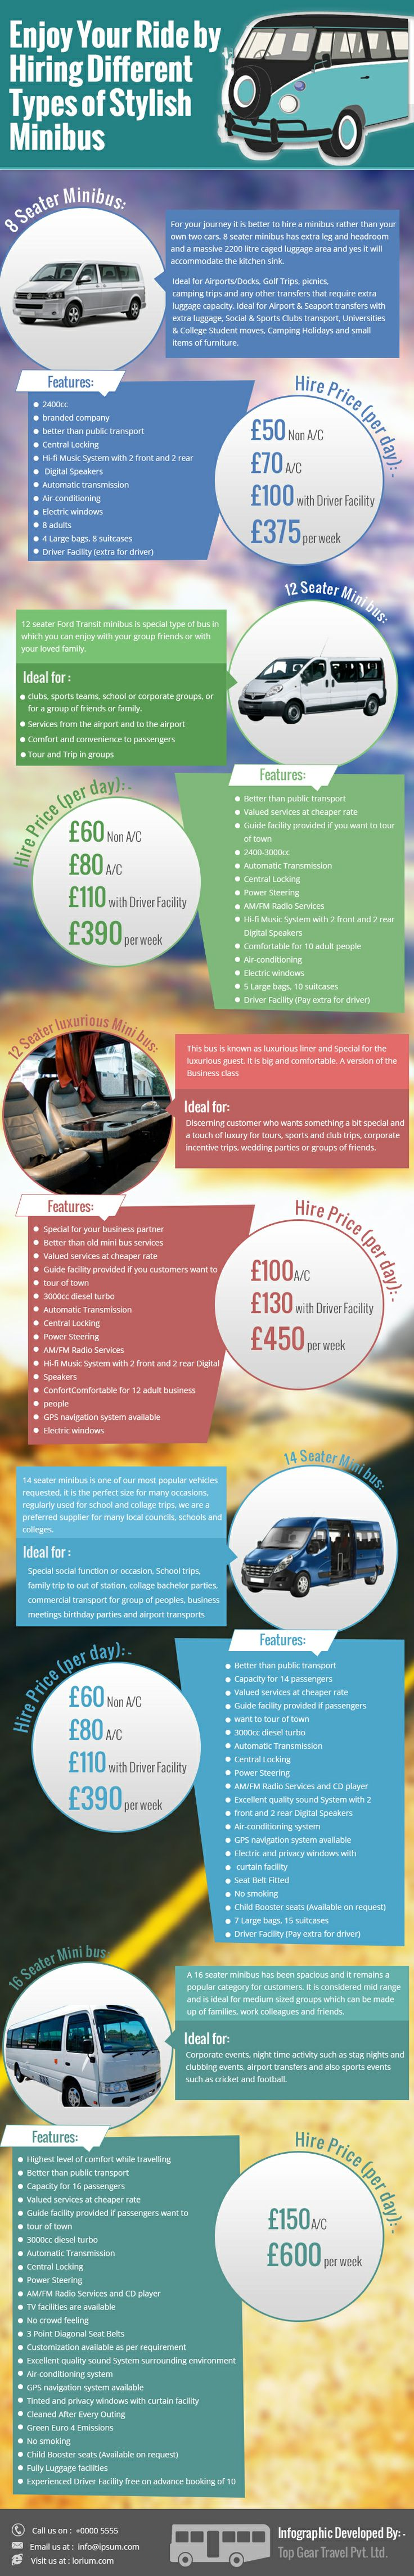 The 31 best Coach Hire images on Pinterest | Coaches, Dundee and ...